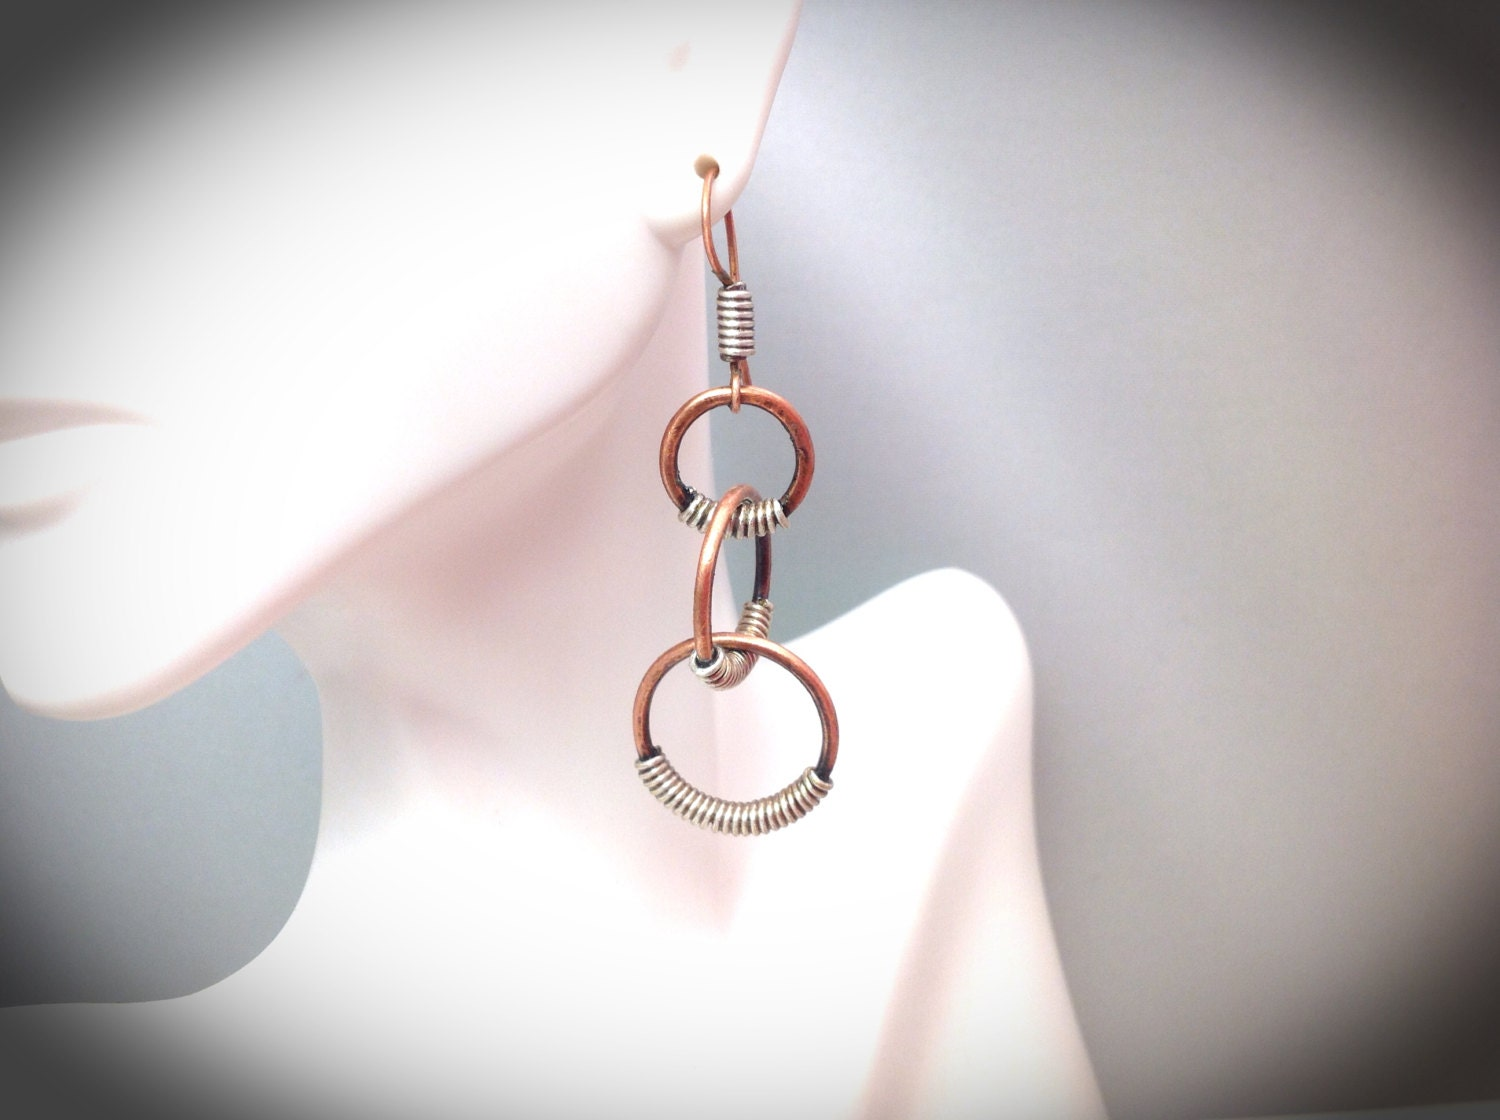 Triple copper and silver coiled wire wrapped hoop earrings.